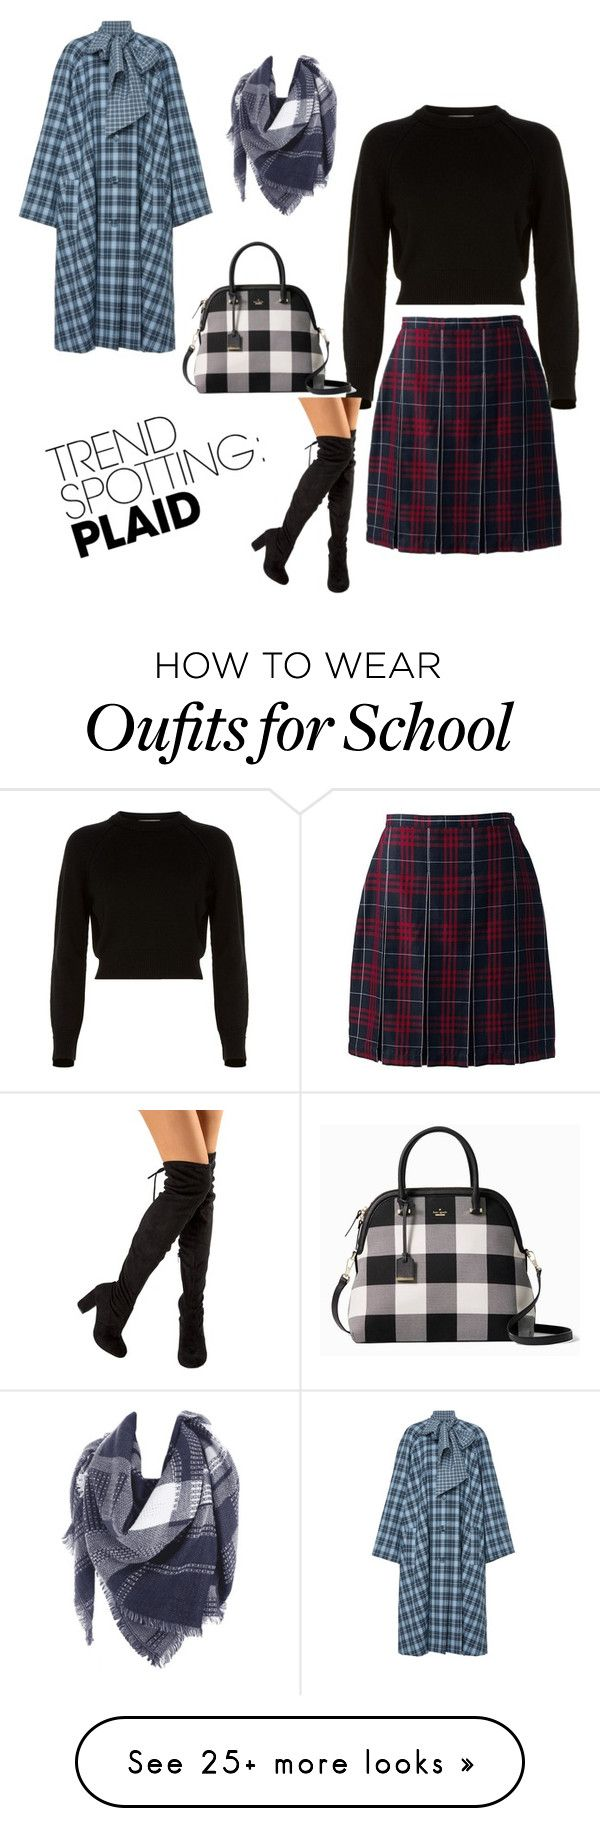 """""""Sem título #41"""" by laisfernanda-1 on Polyvore featuring Helmut Lang, Lands' End, Rodarte, Kate Spade, contestentry and NYFWPlaid"""